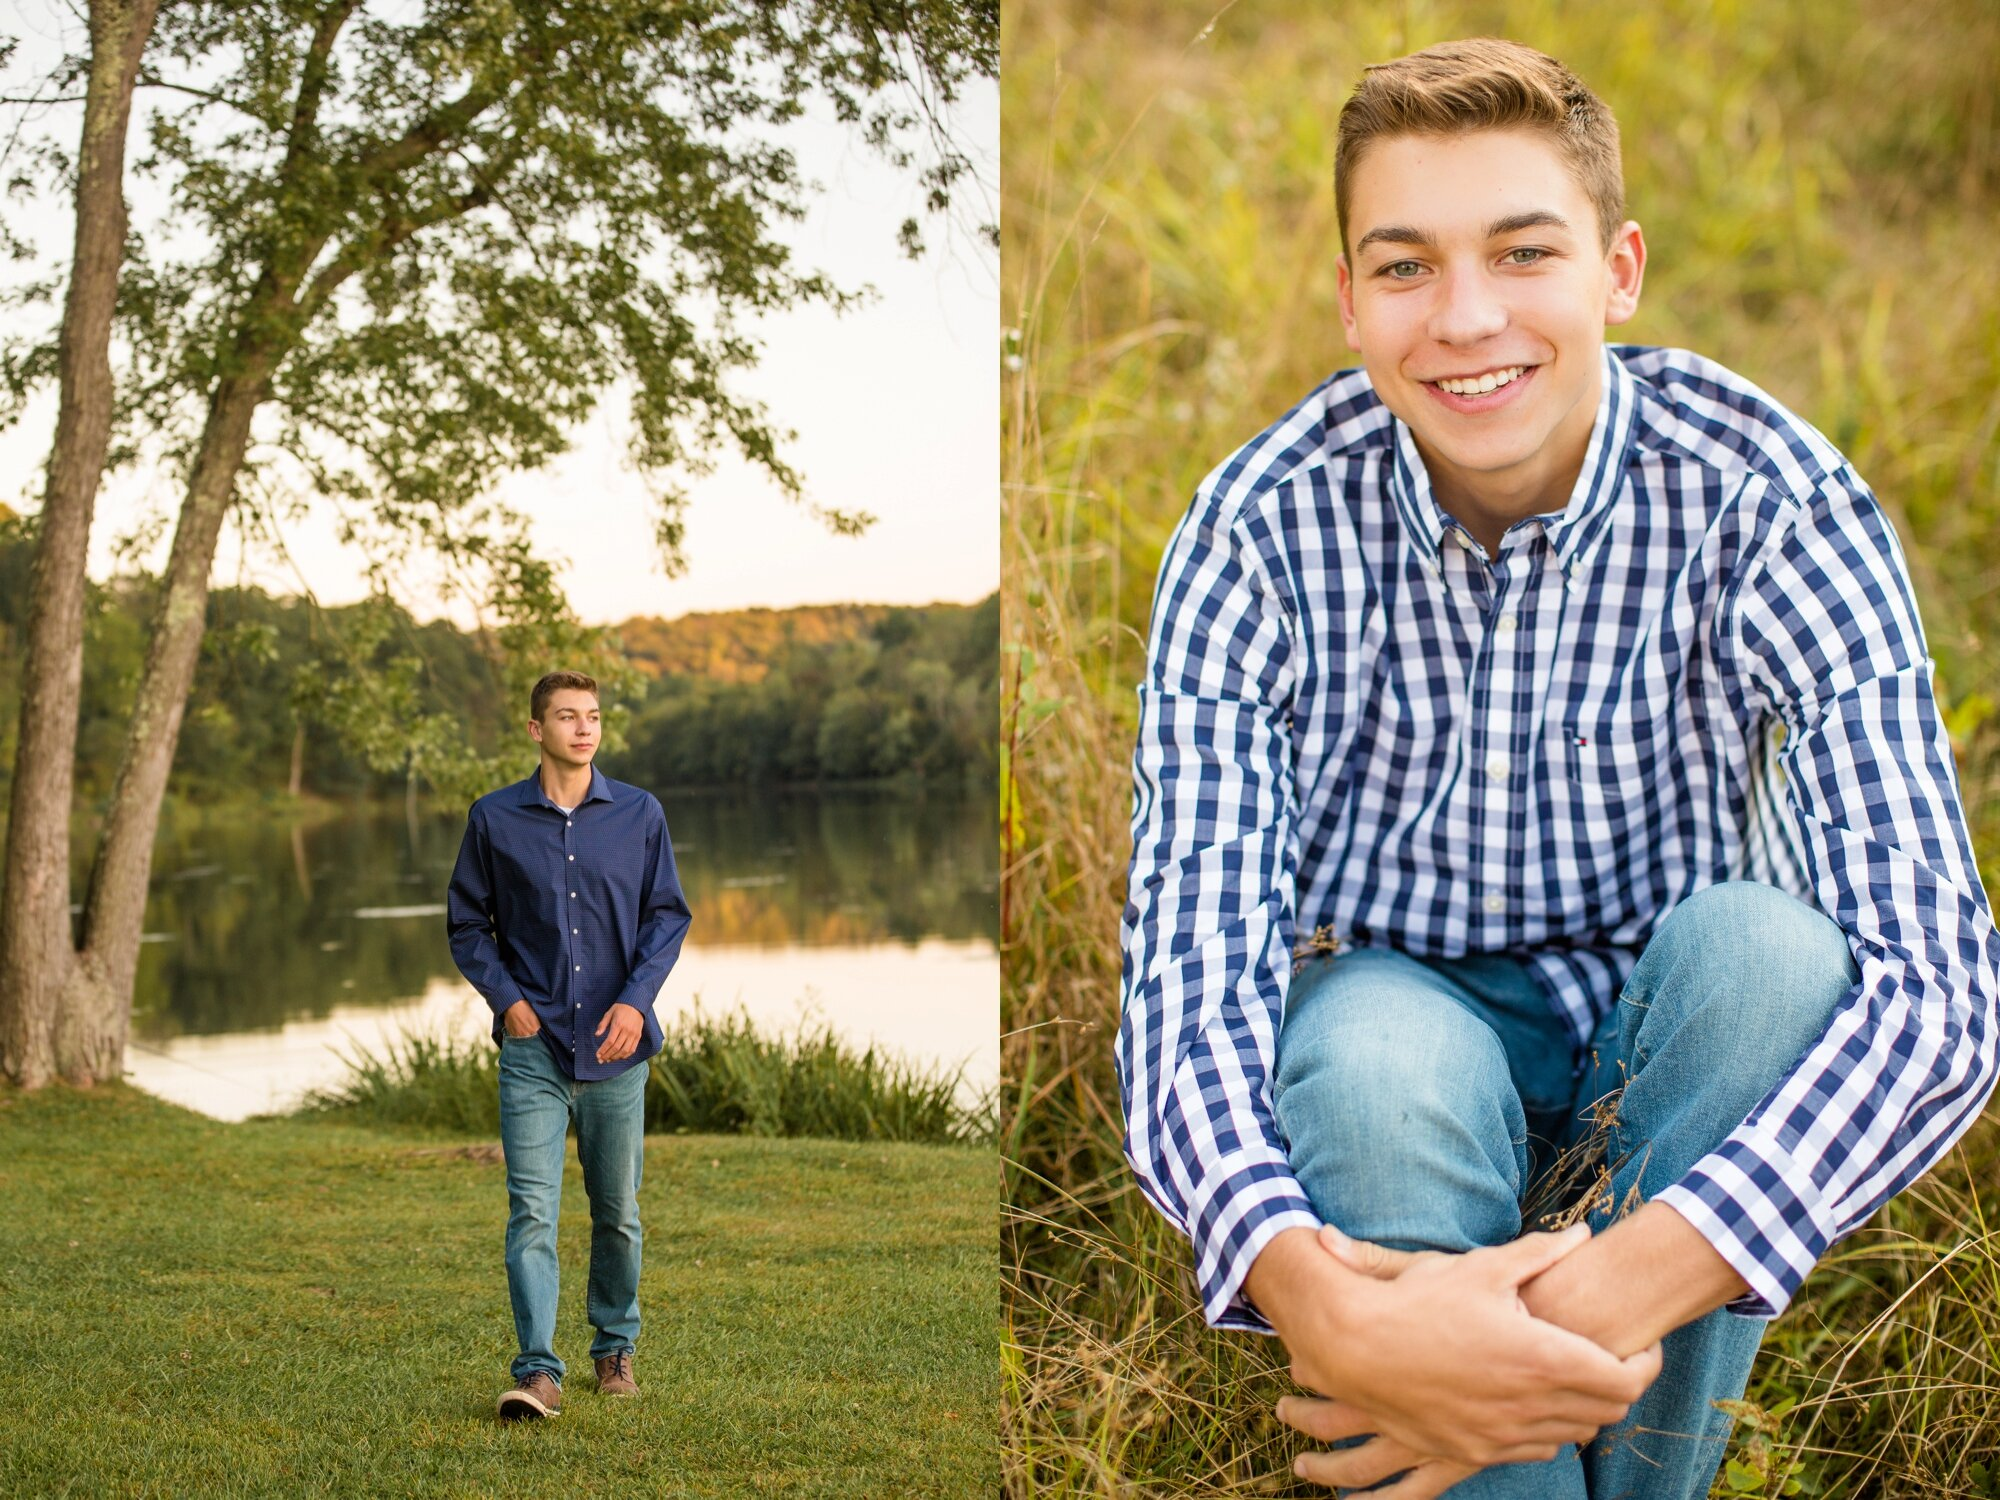 north park senior photos, pittsburgh senior photographer, seneca valley senior photographers, location ideas for senior pictures pittsburgh